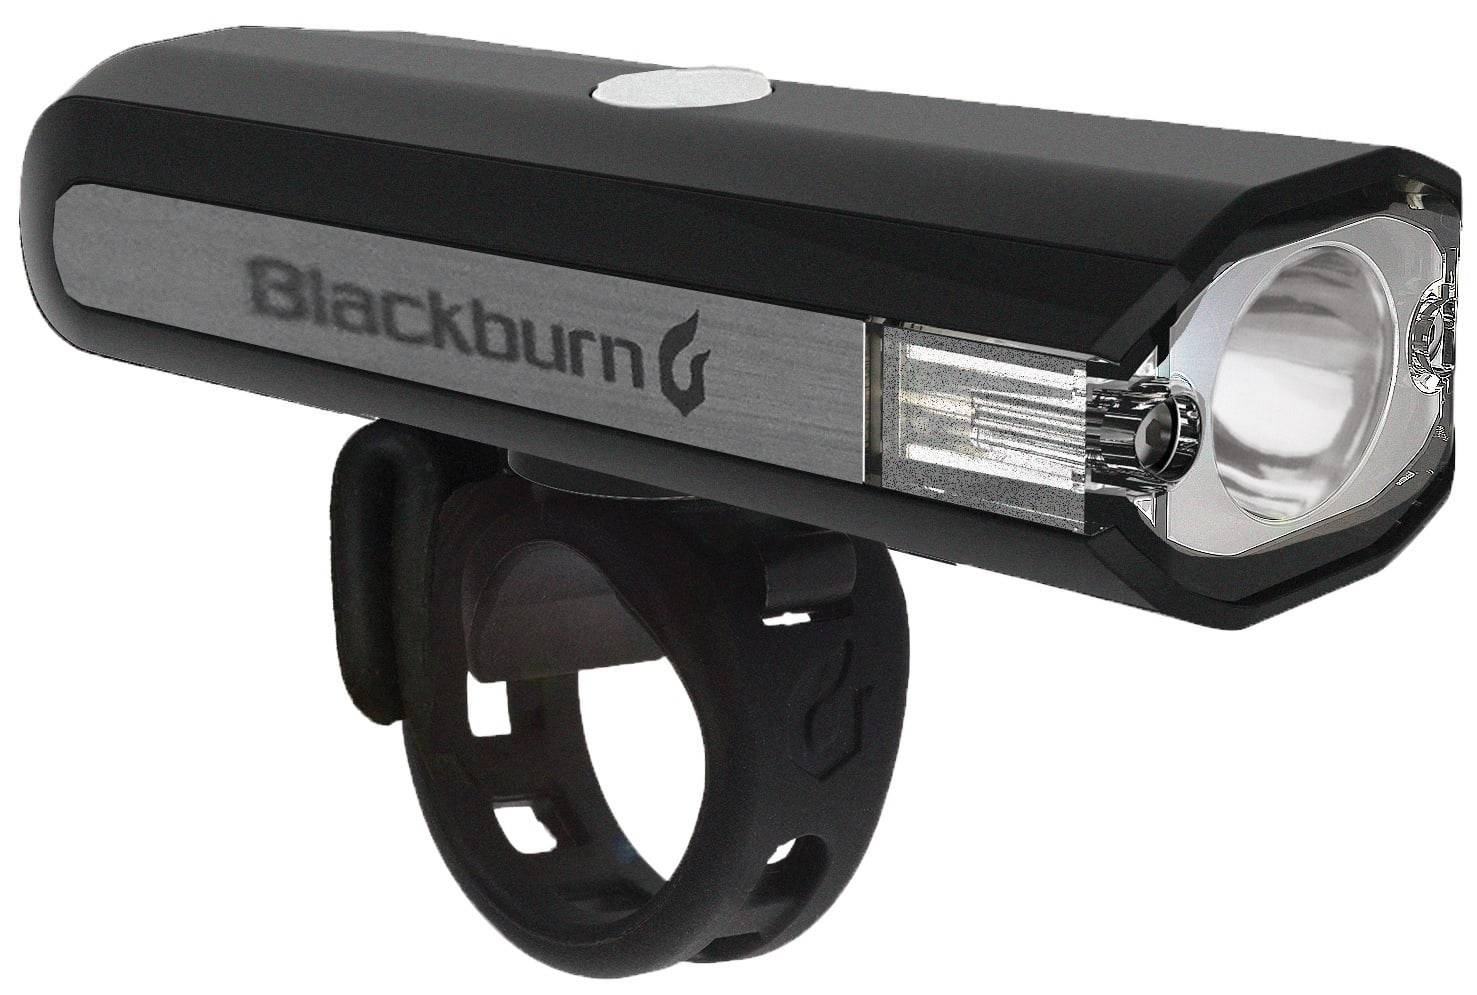 Image of Blackbrun Central 350 Micro Front Bike Light